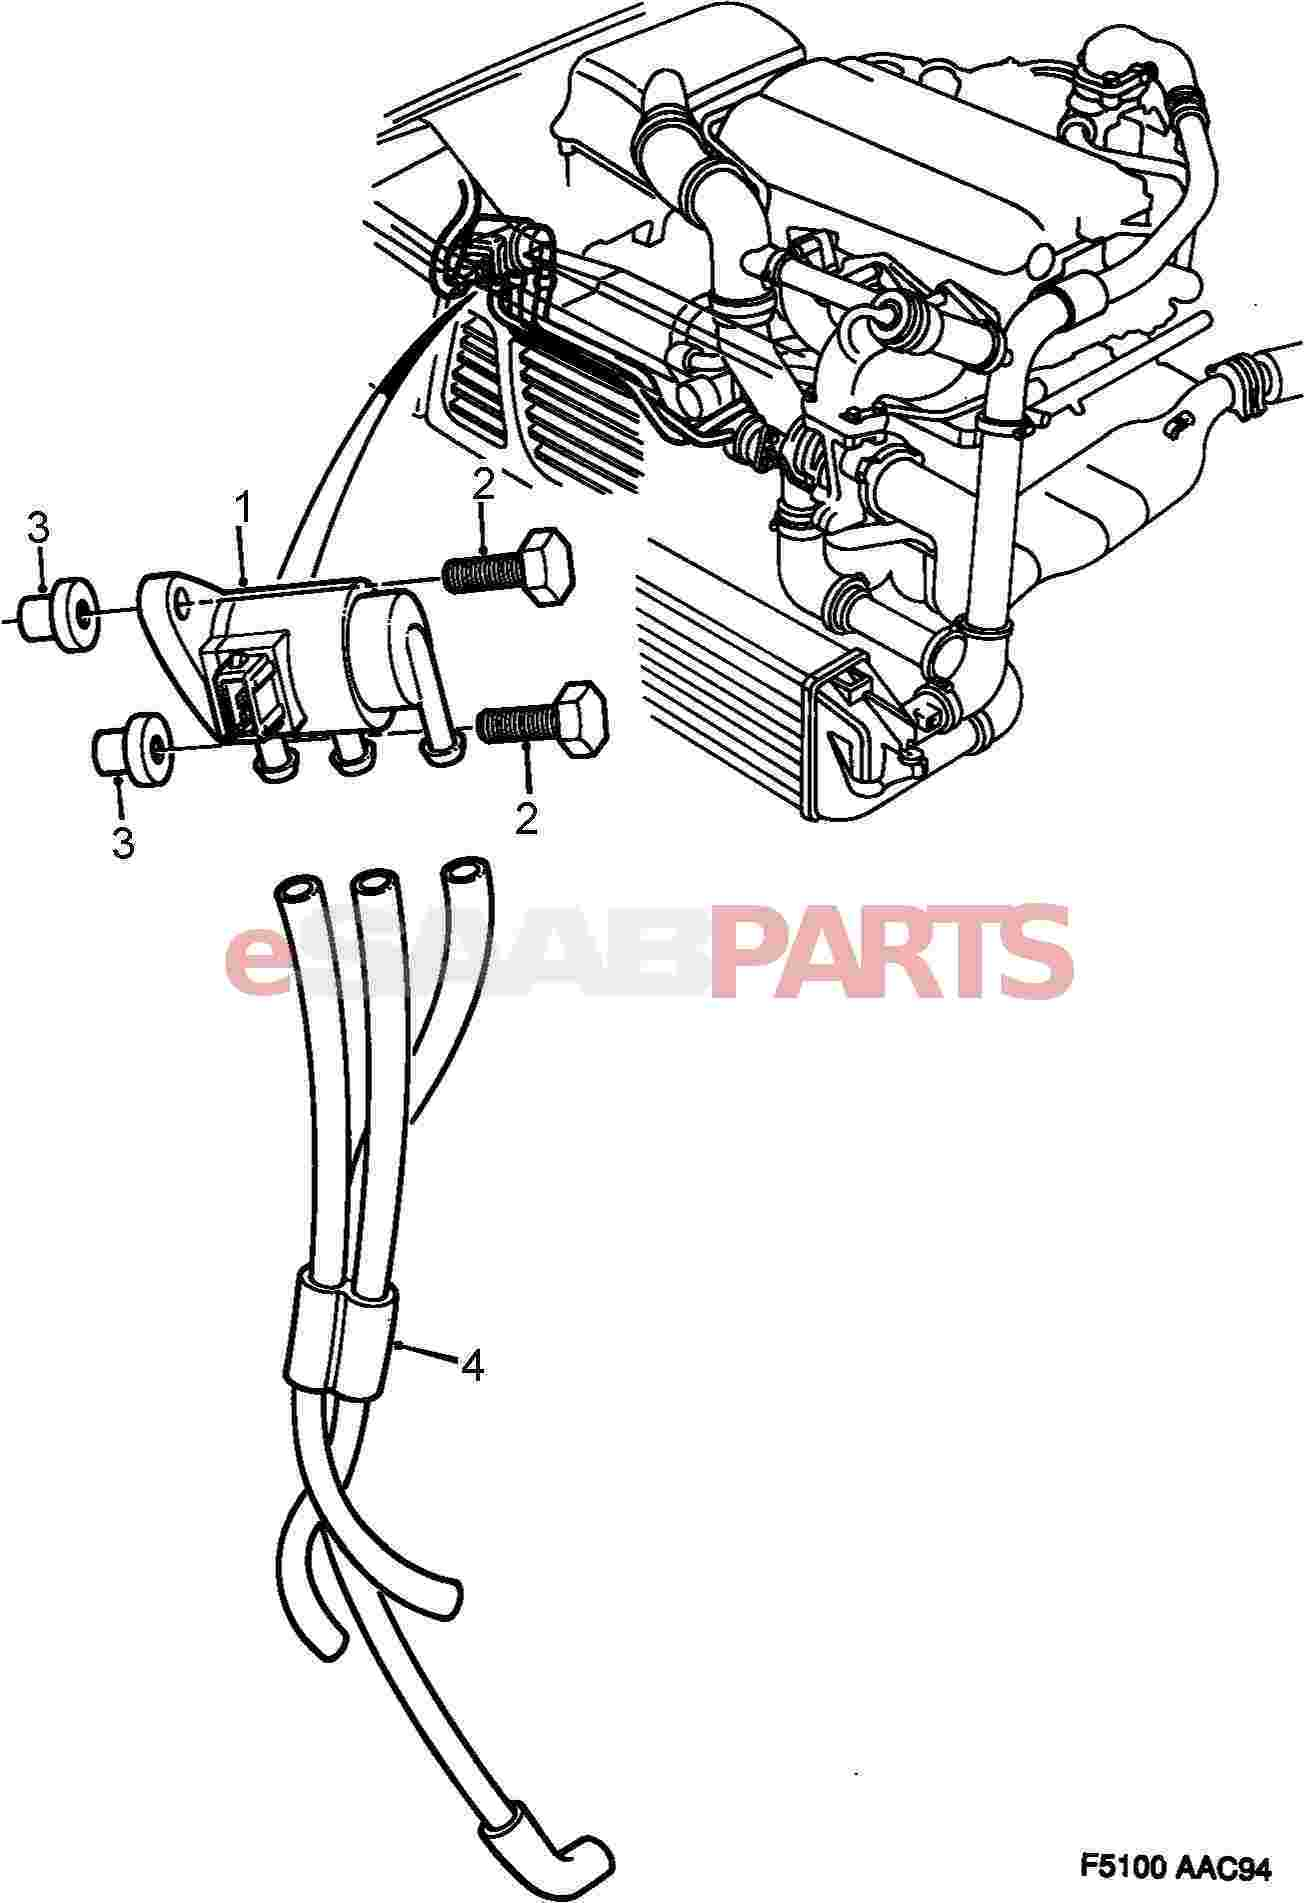 Saab 9 3 Engine Diagram, Saab, Get Free Image About Wiring